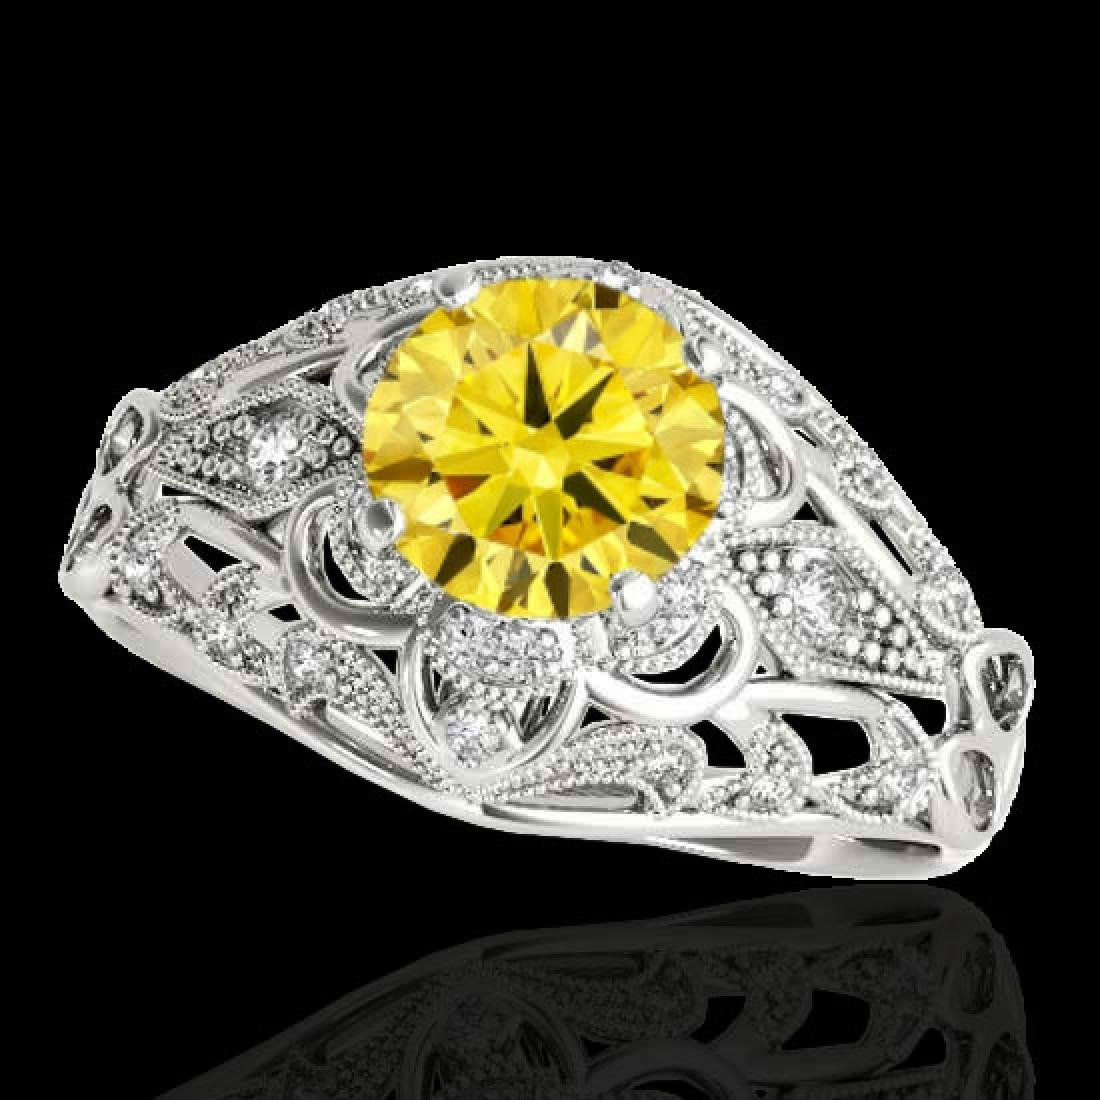 1.36 CTW Certified Si Intense Yellow Diamond Solitaire